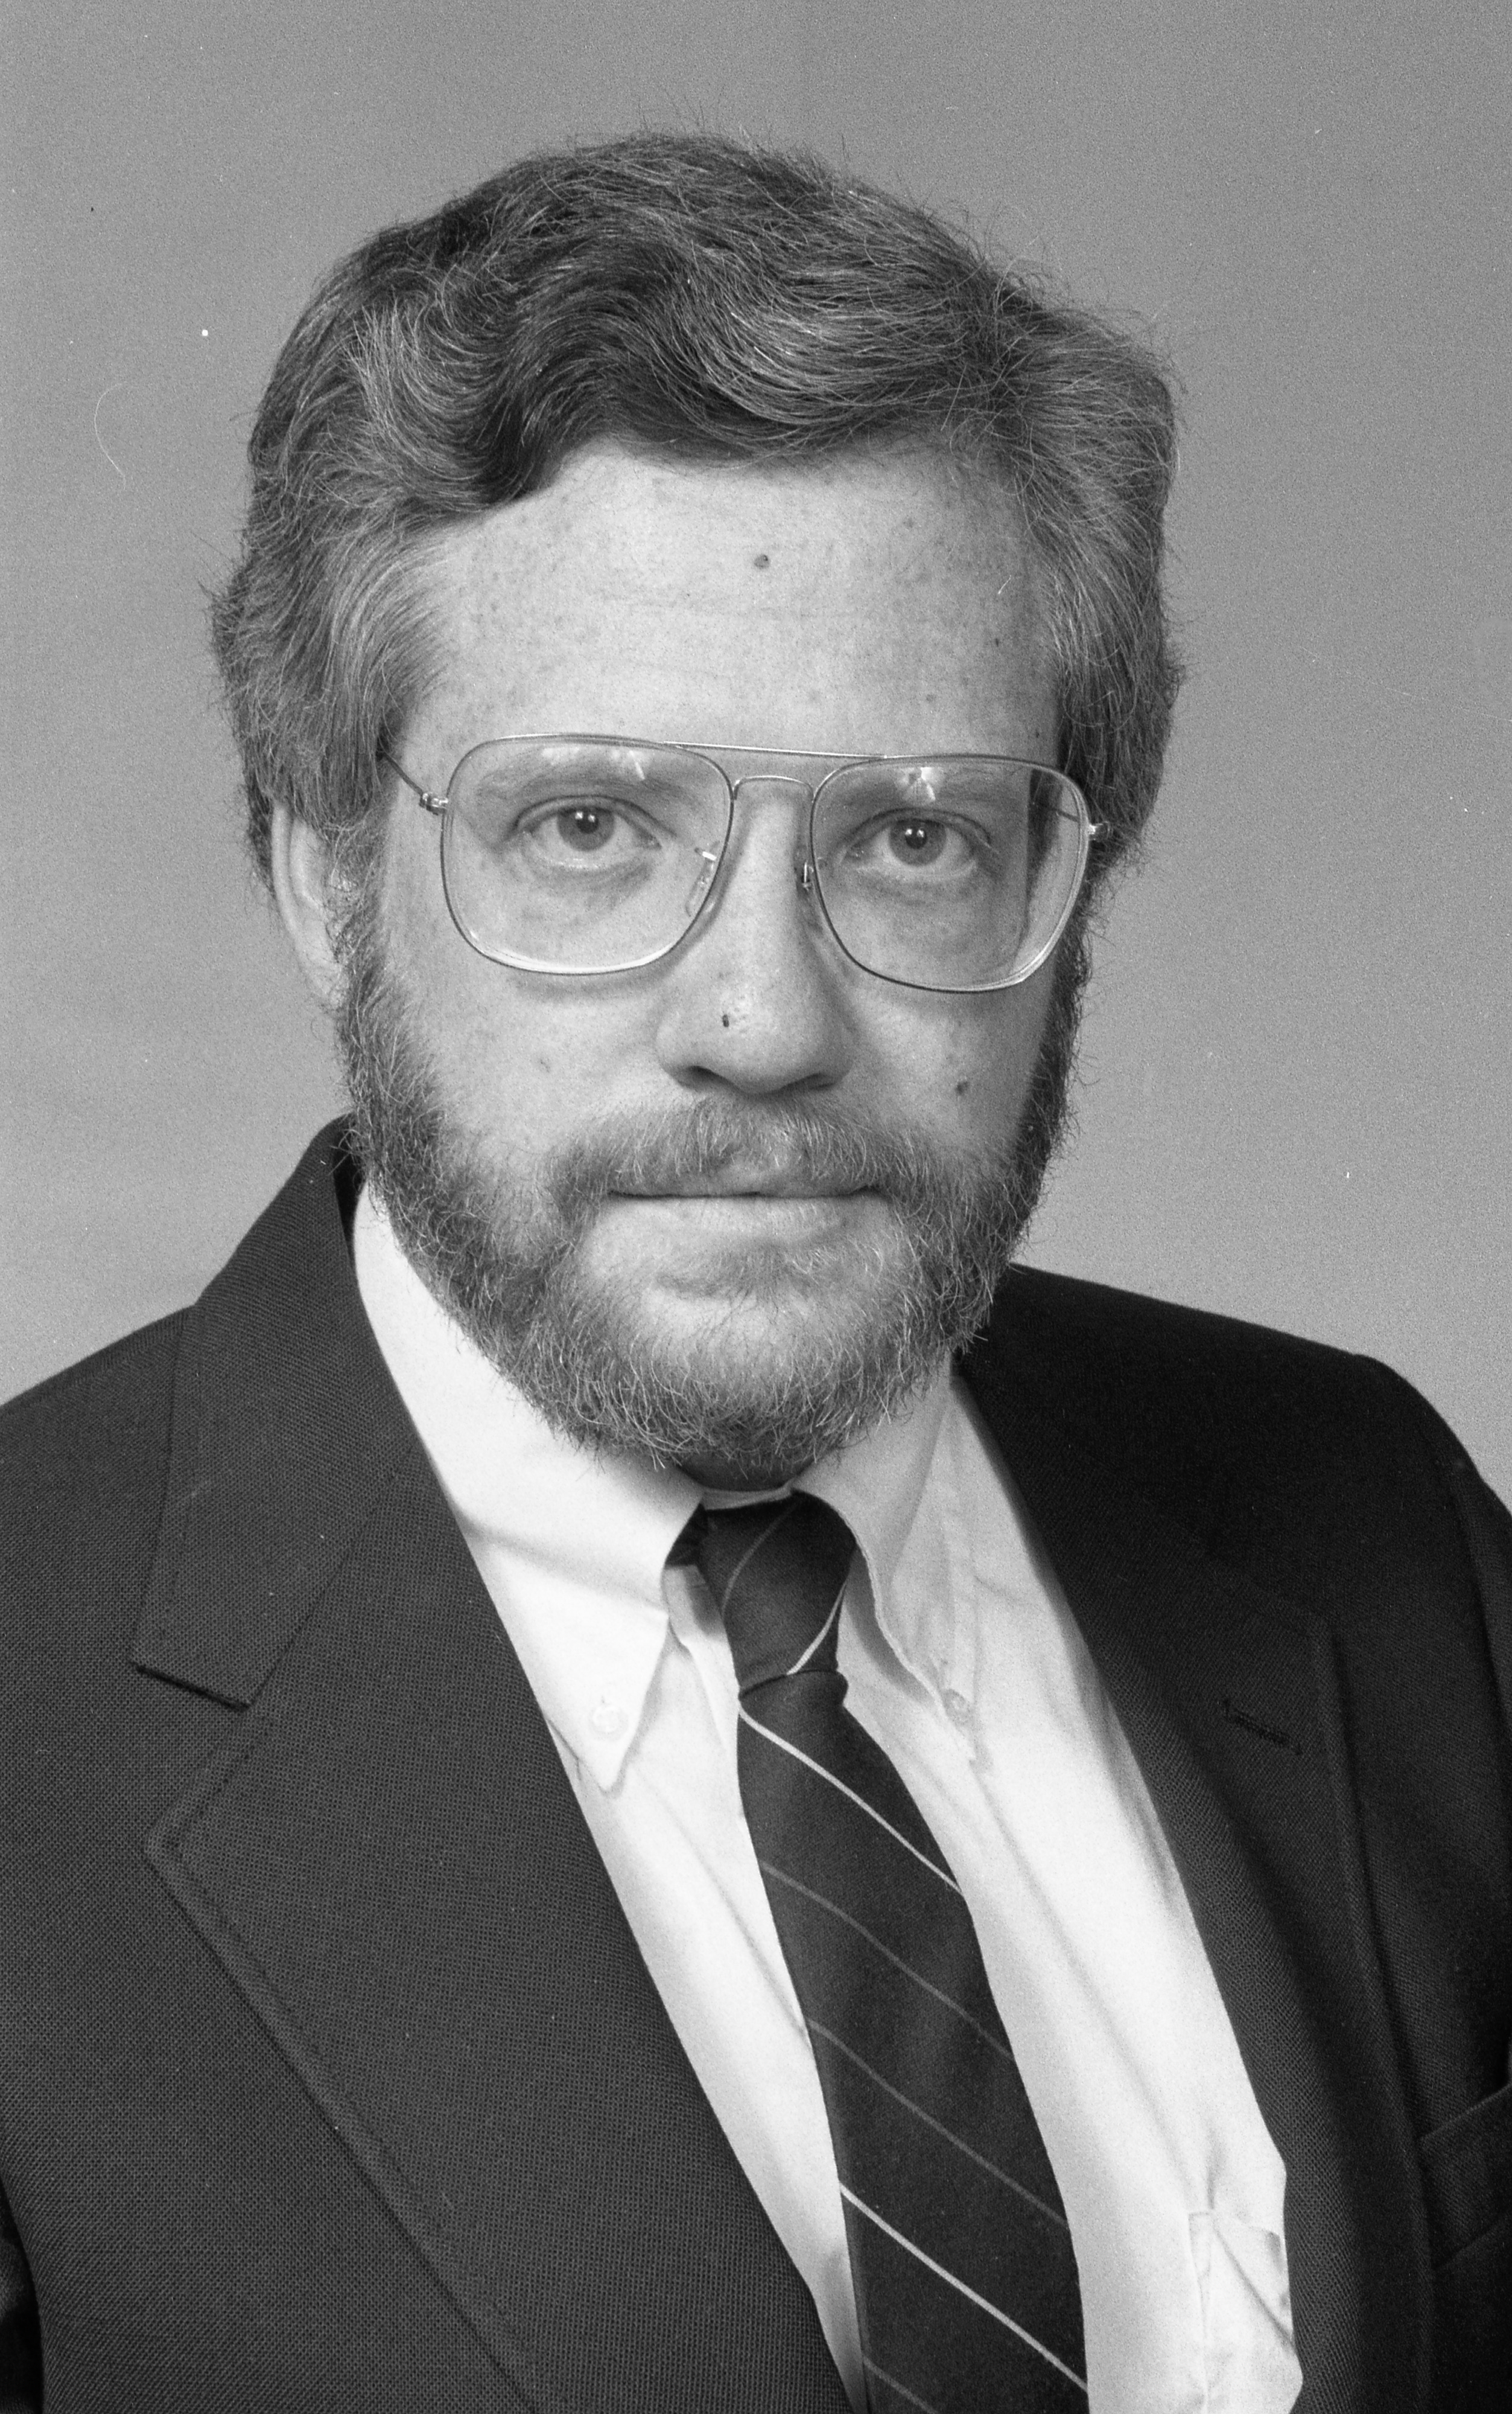 Tom Wieder - Attorney & Member Of The Ann Arbor Zoning Board Of Appeals, July 1985 image